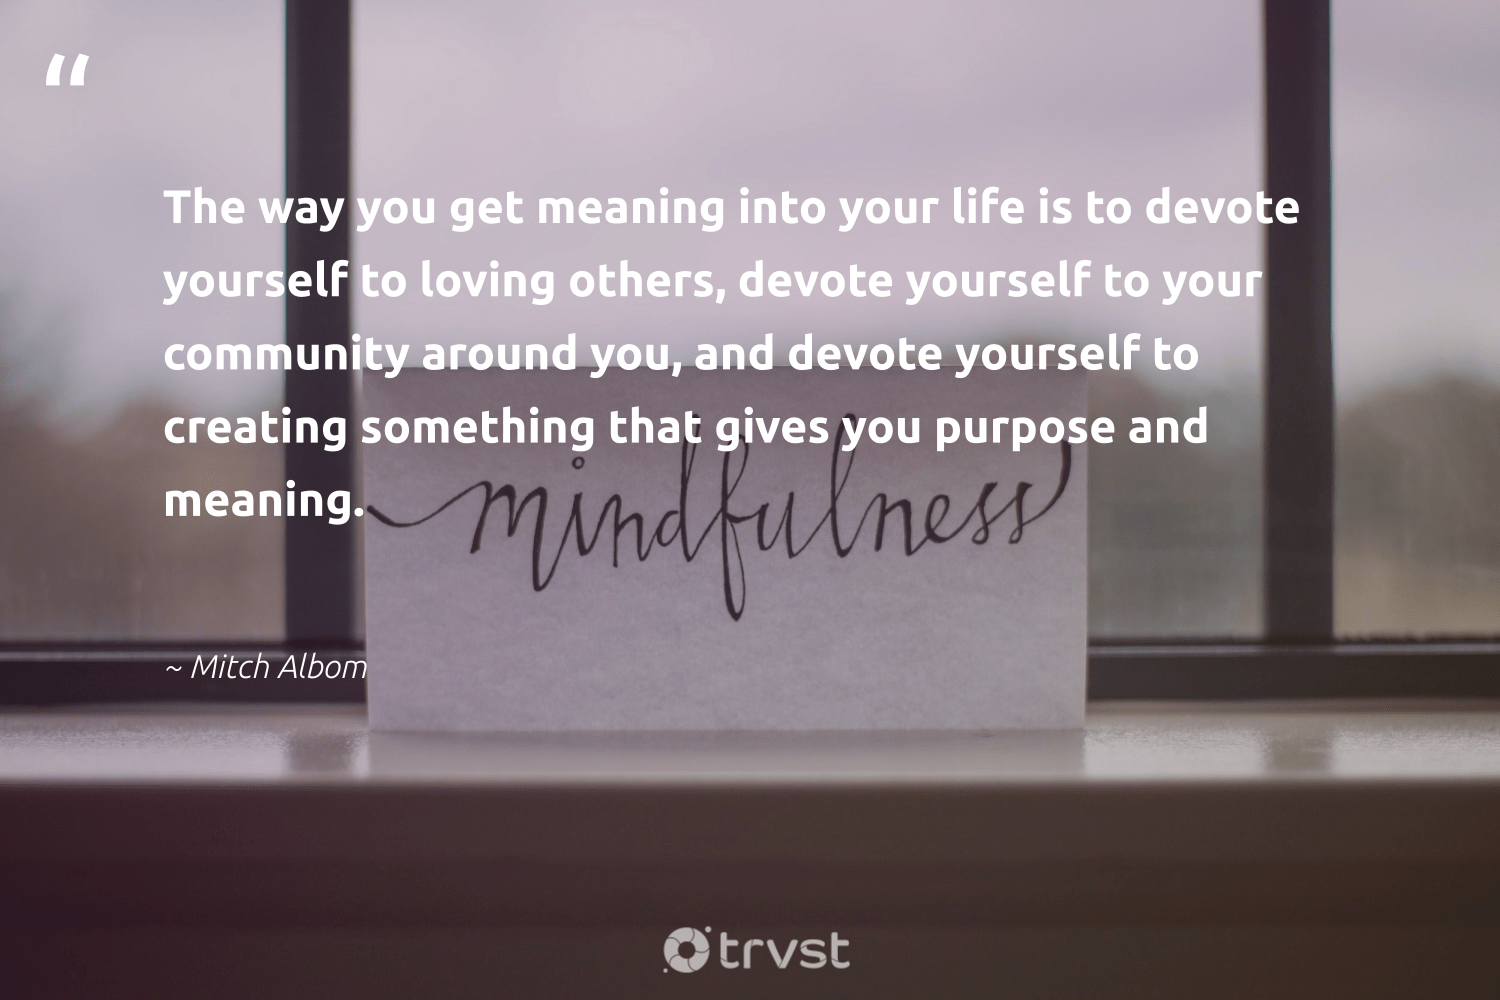 """""""The way you get meaning into your life is to devote yourself to loving others, devote yourself to your community around you, and devote yourself to creating something that gives you purpose and meaning.""""  - Mitch Albom #trvst #quotes #purpose #purposedriven #nevergiveup #mindset #dotherightthing #findingpupose #begreat #changemakers #takeaction #findpurpose"""